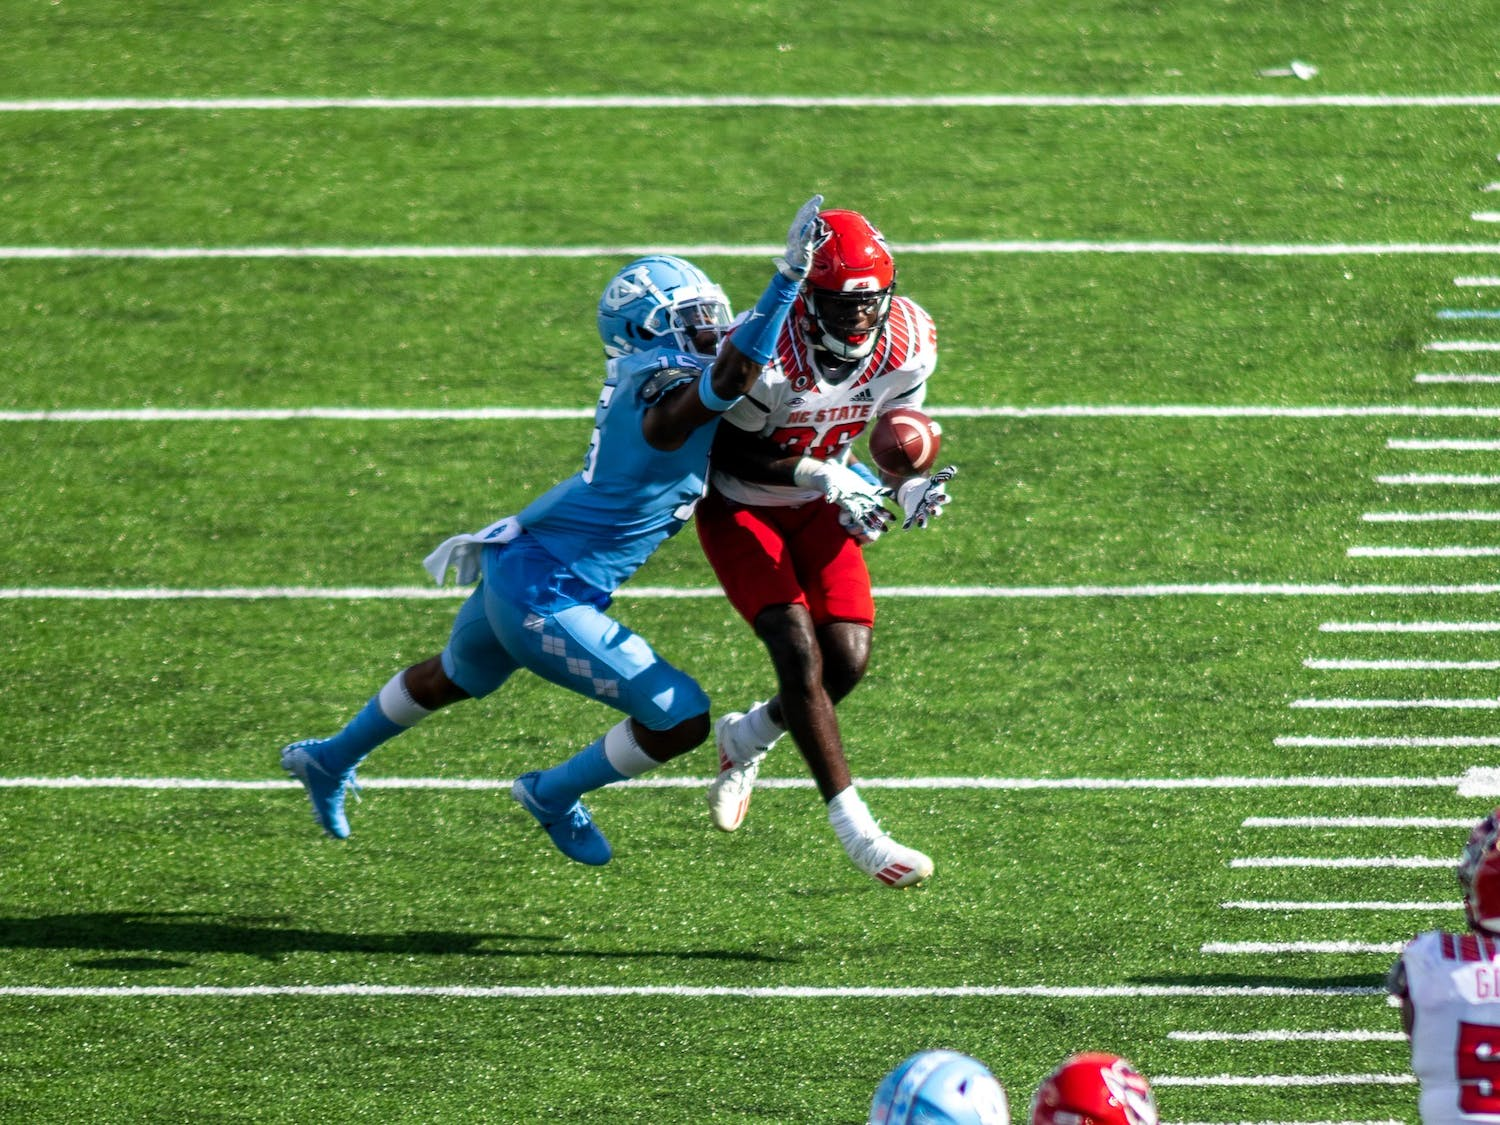 UNC sophomore defensive back Ladaeson DeAndre Hollins (15) blocks a pass in Kenan Stadium Oct. 24, 2020. The Tar Heels beat the Wolfpack 48-21.